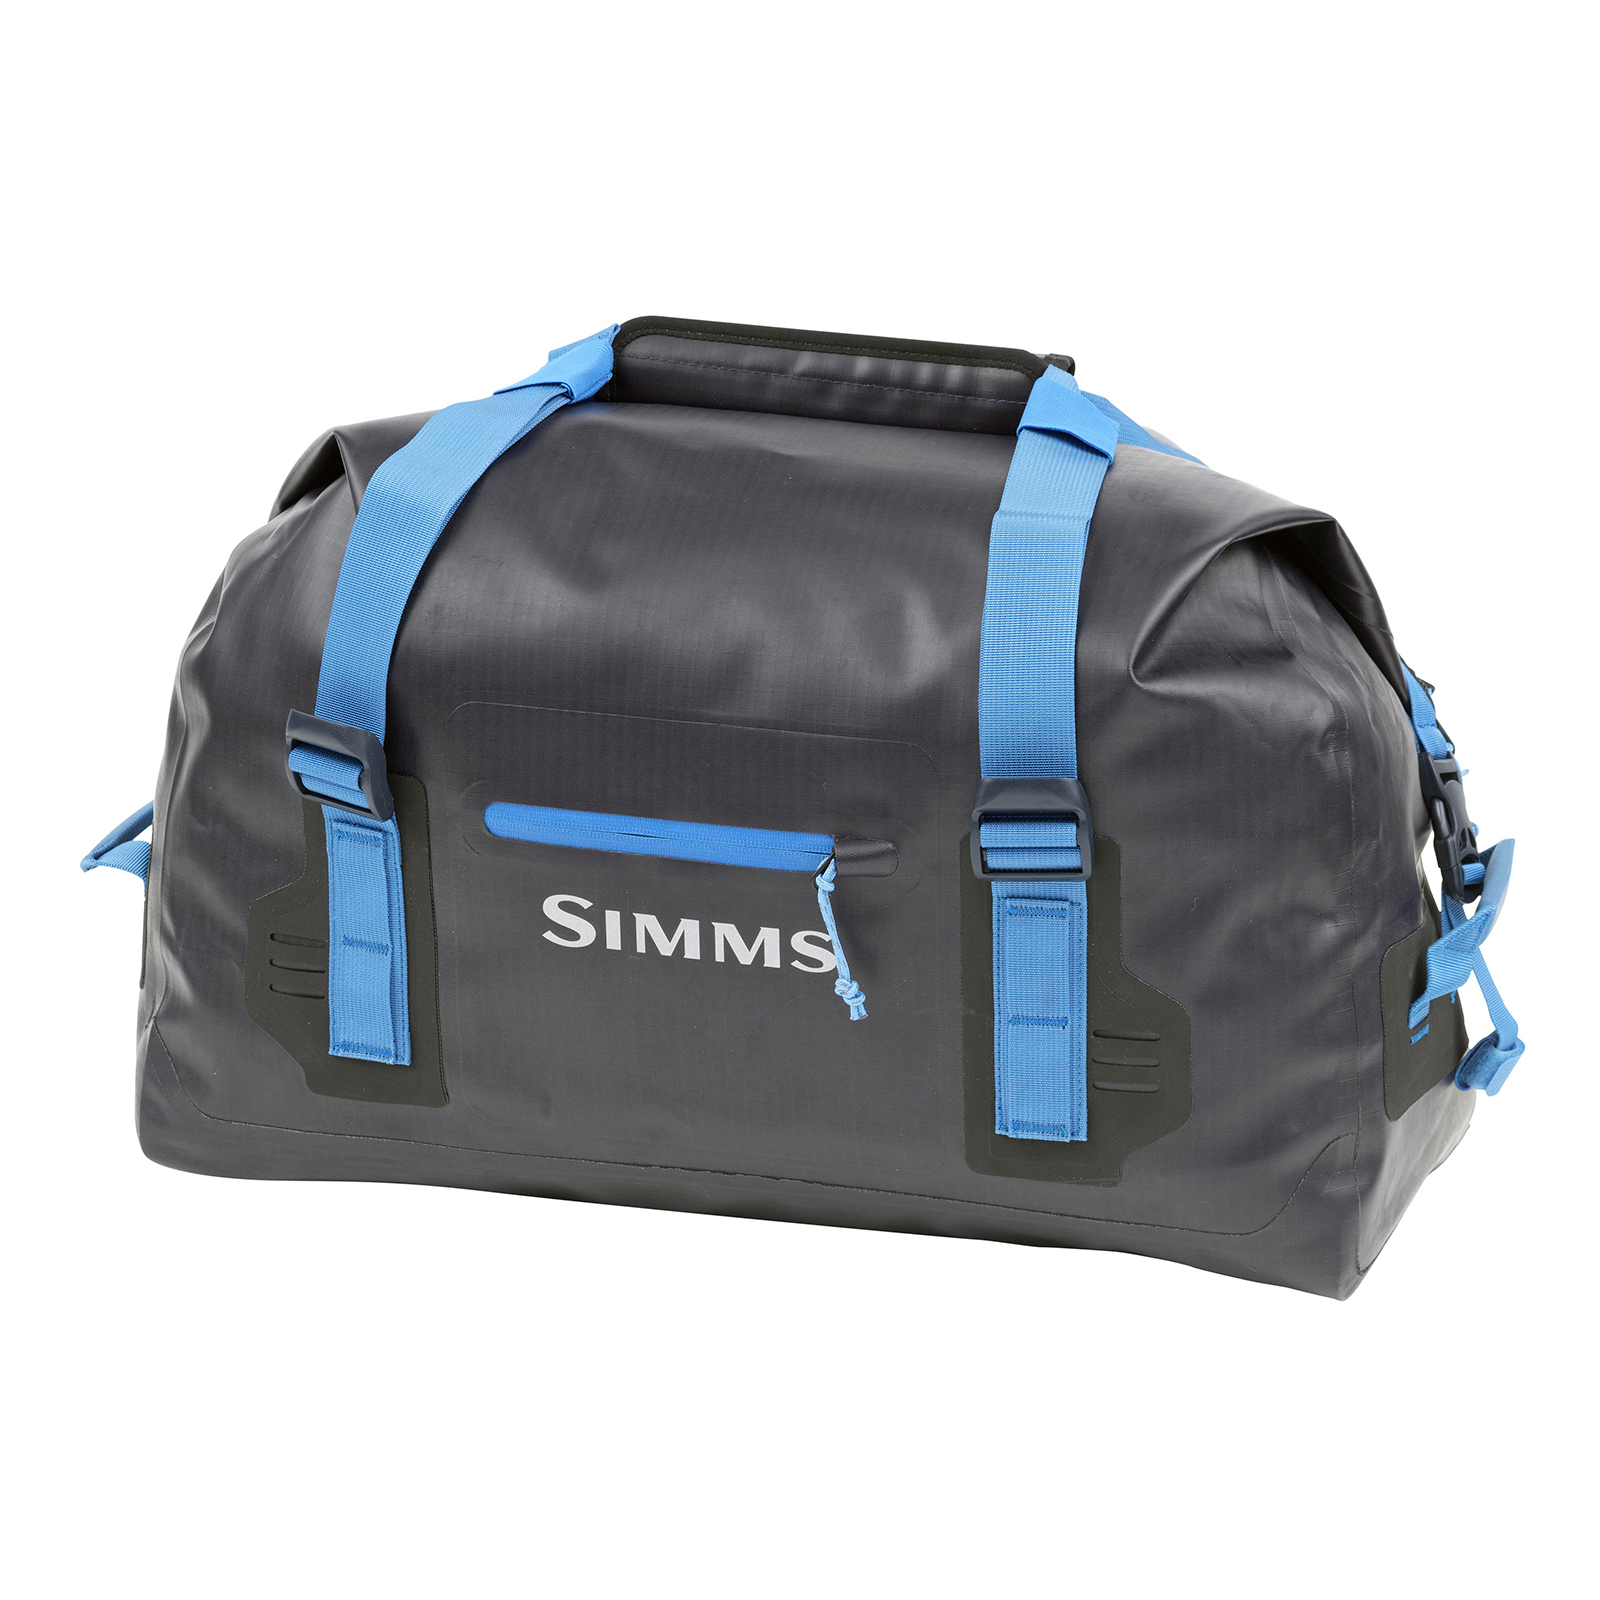 Simms-Dry-Creek-Duffel-Bag_2